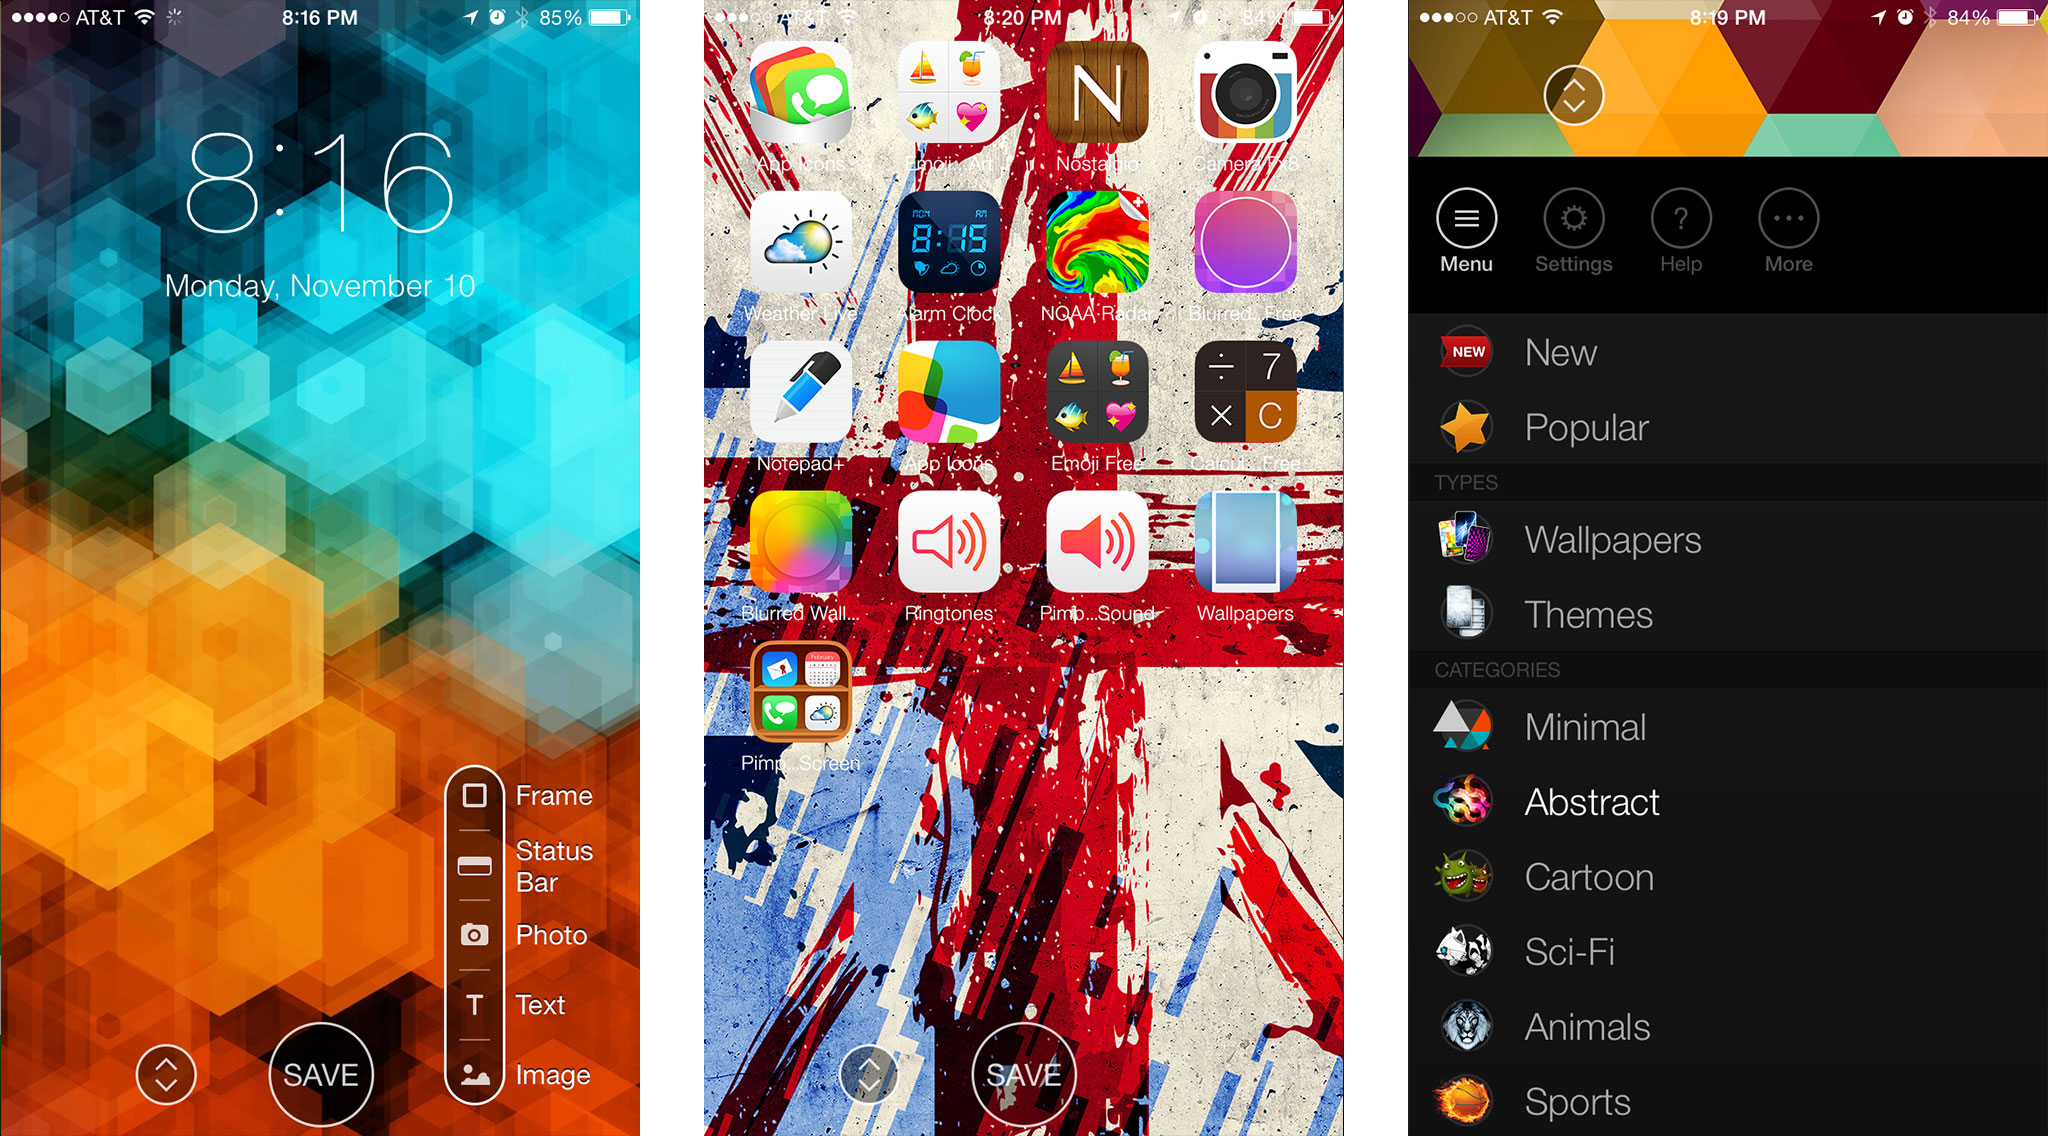 Best wallpaper apps for iPhone 6 and iPhone 6 Plus! | iMore